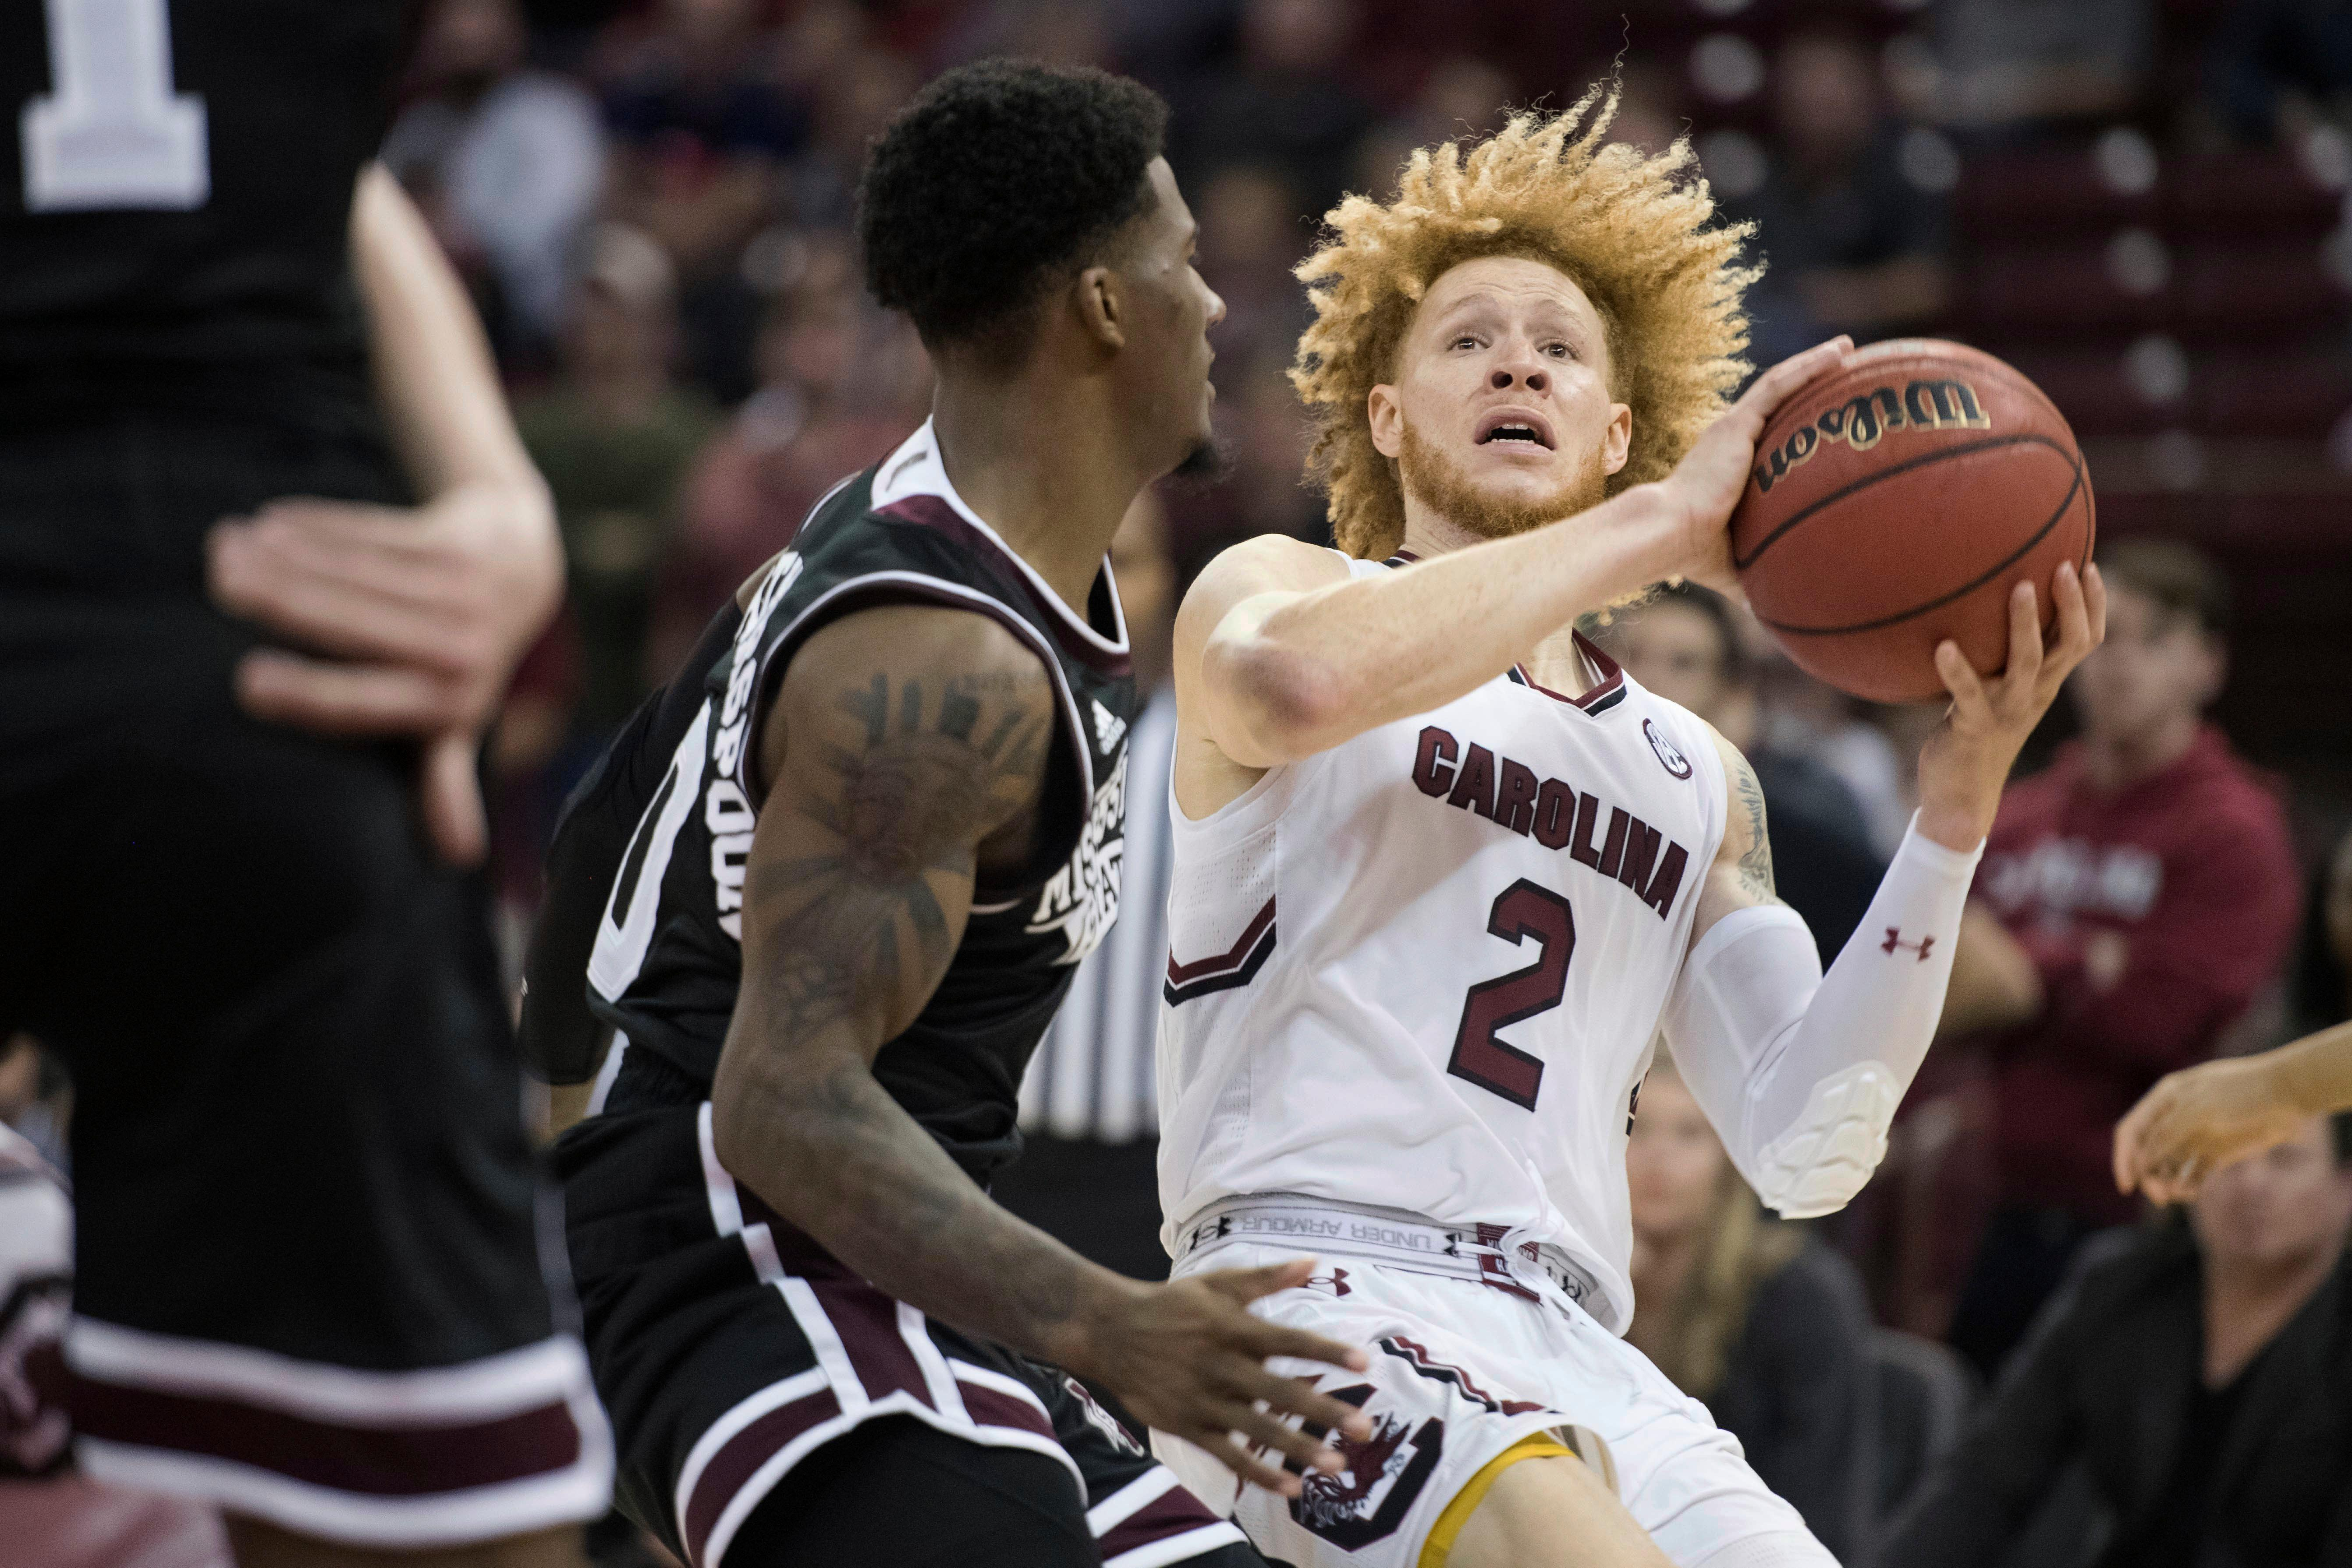 South Carolina guard Hassani Gravett (2) drives as Mississippi State guard Nick Weatherspoon (0) defends during the second half of an NCAA college basketball game Tuesday, Jan. 8, 2019, in Columbia, S.C. South Carolina won 87-82. (AP Photo/Sean Rayford)